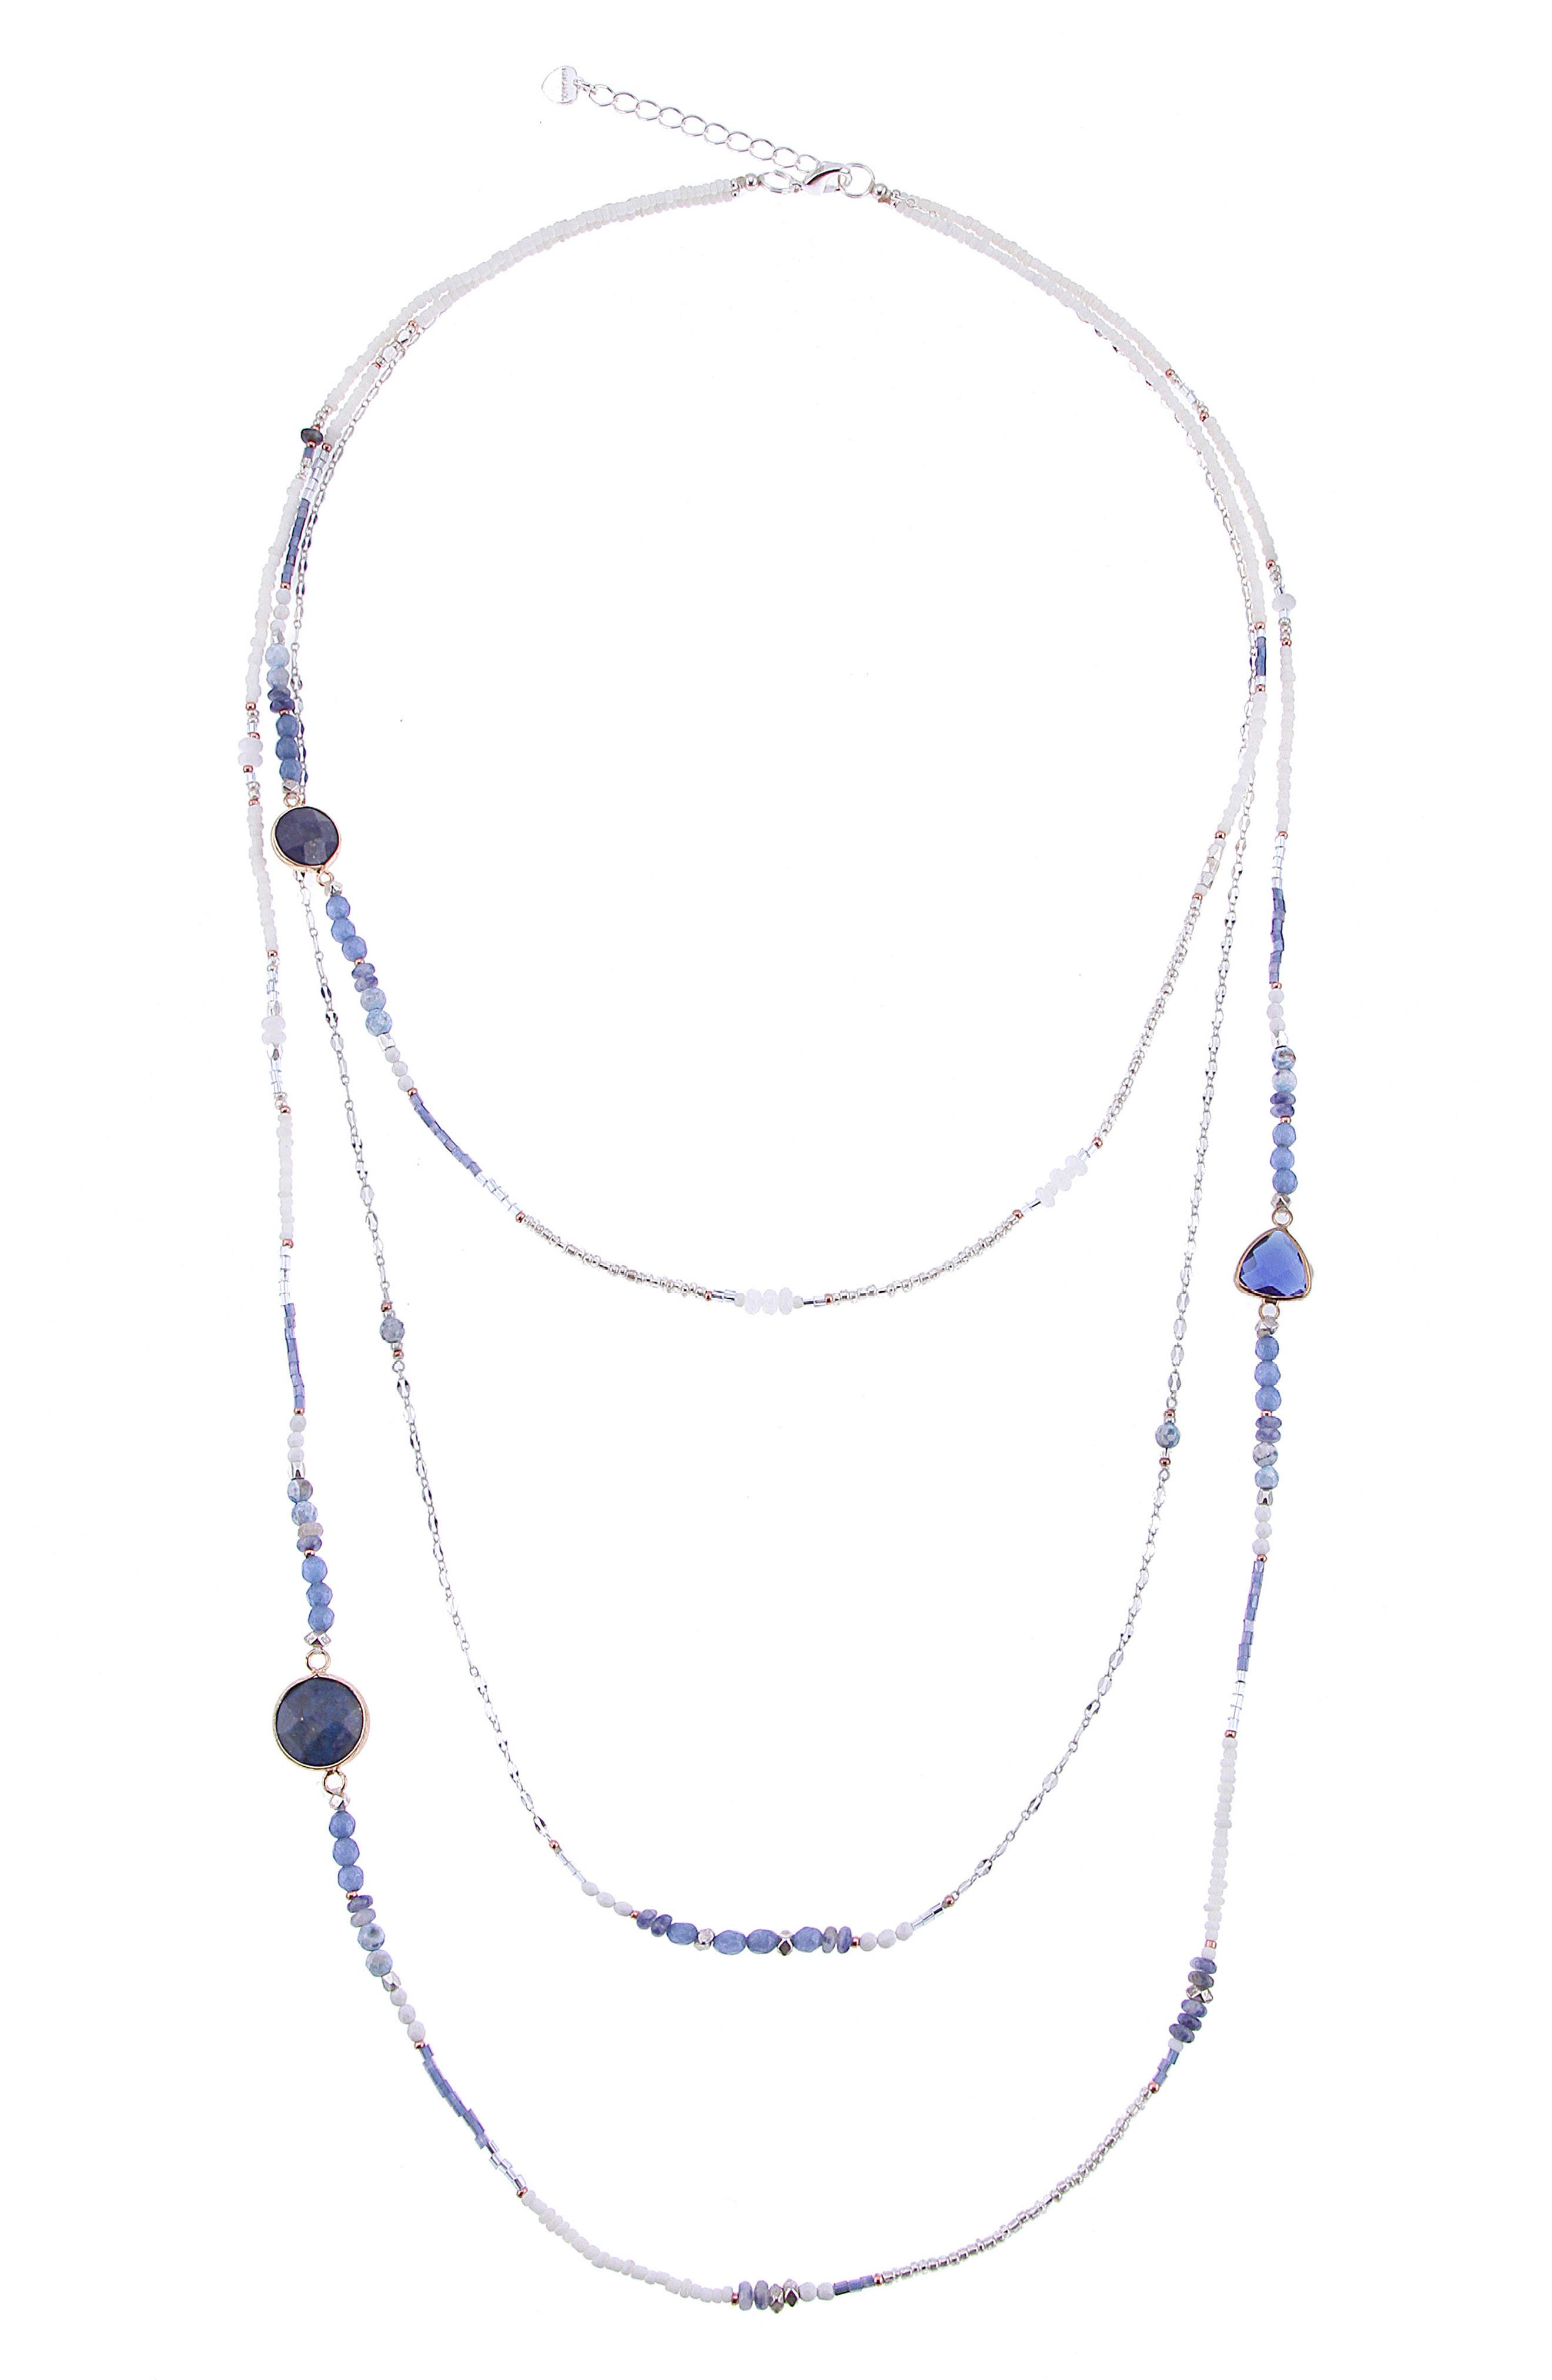 Agate & Crystal Triple Strand Necklace,                             Main thumbnail 1, color,                             Blue